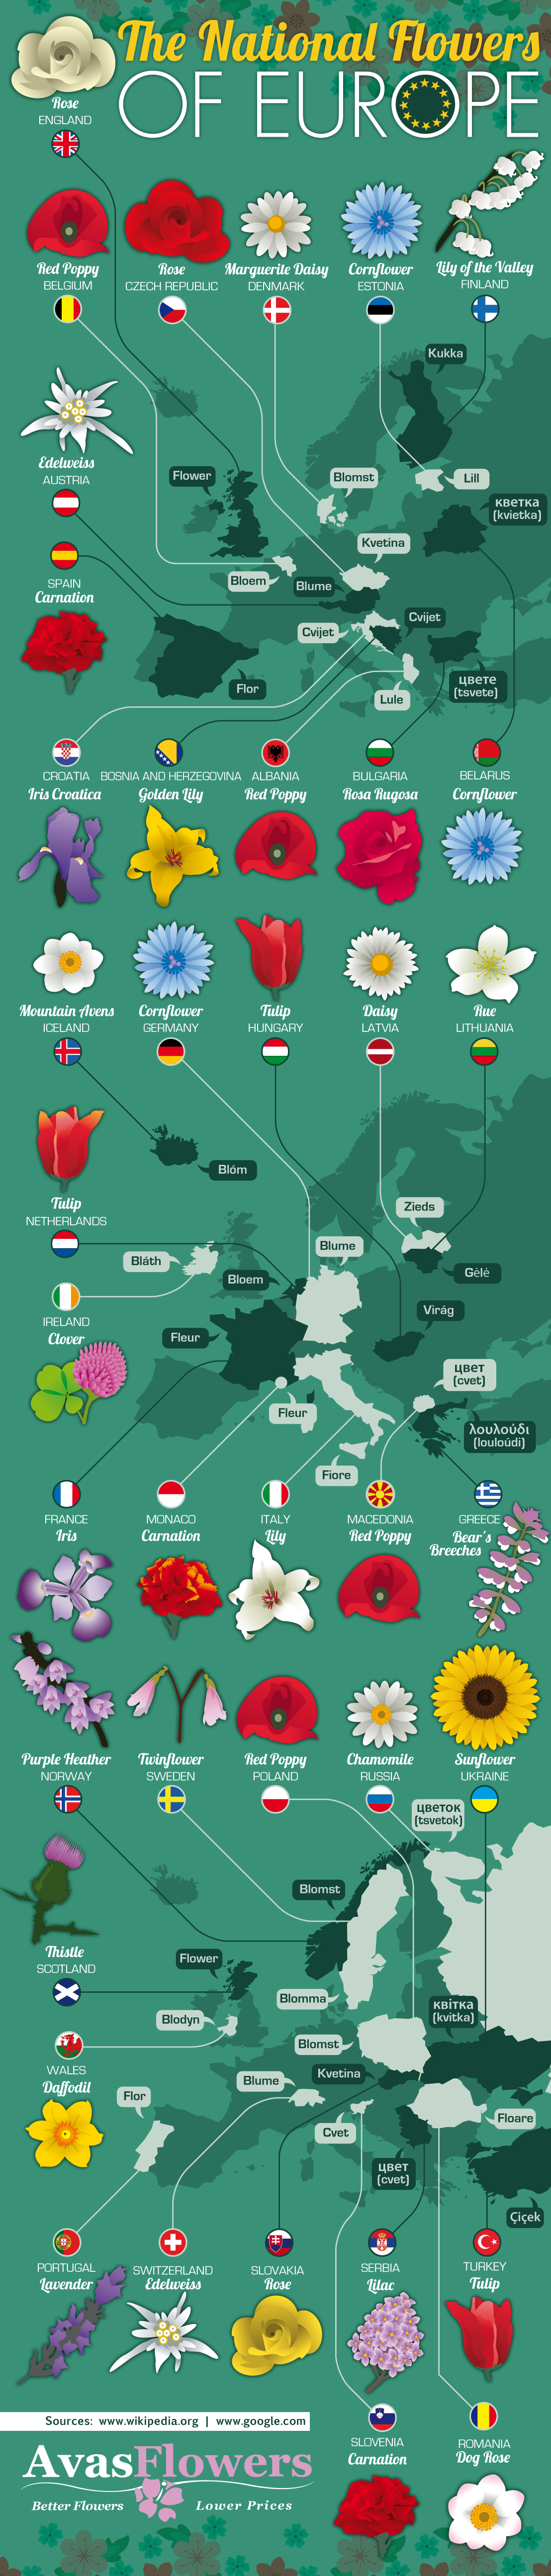 The National Flowers of Europe - Infographic